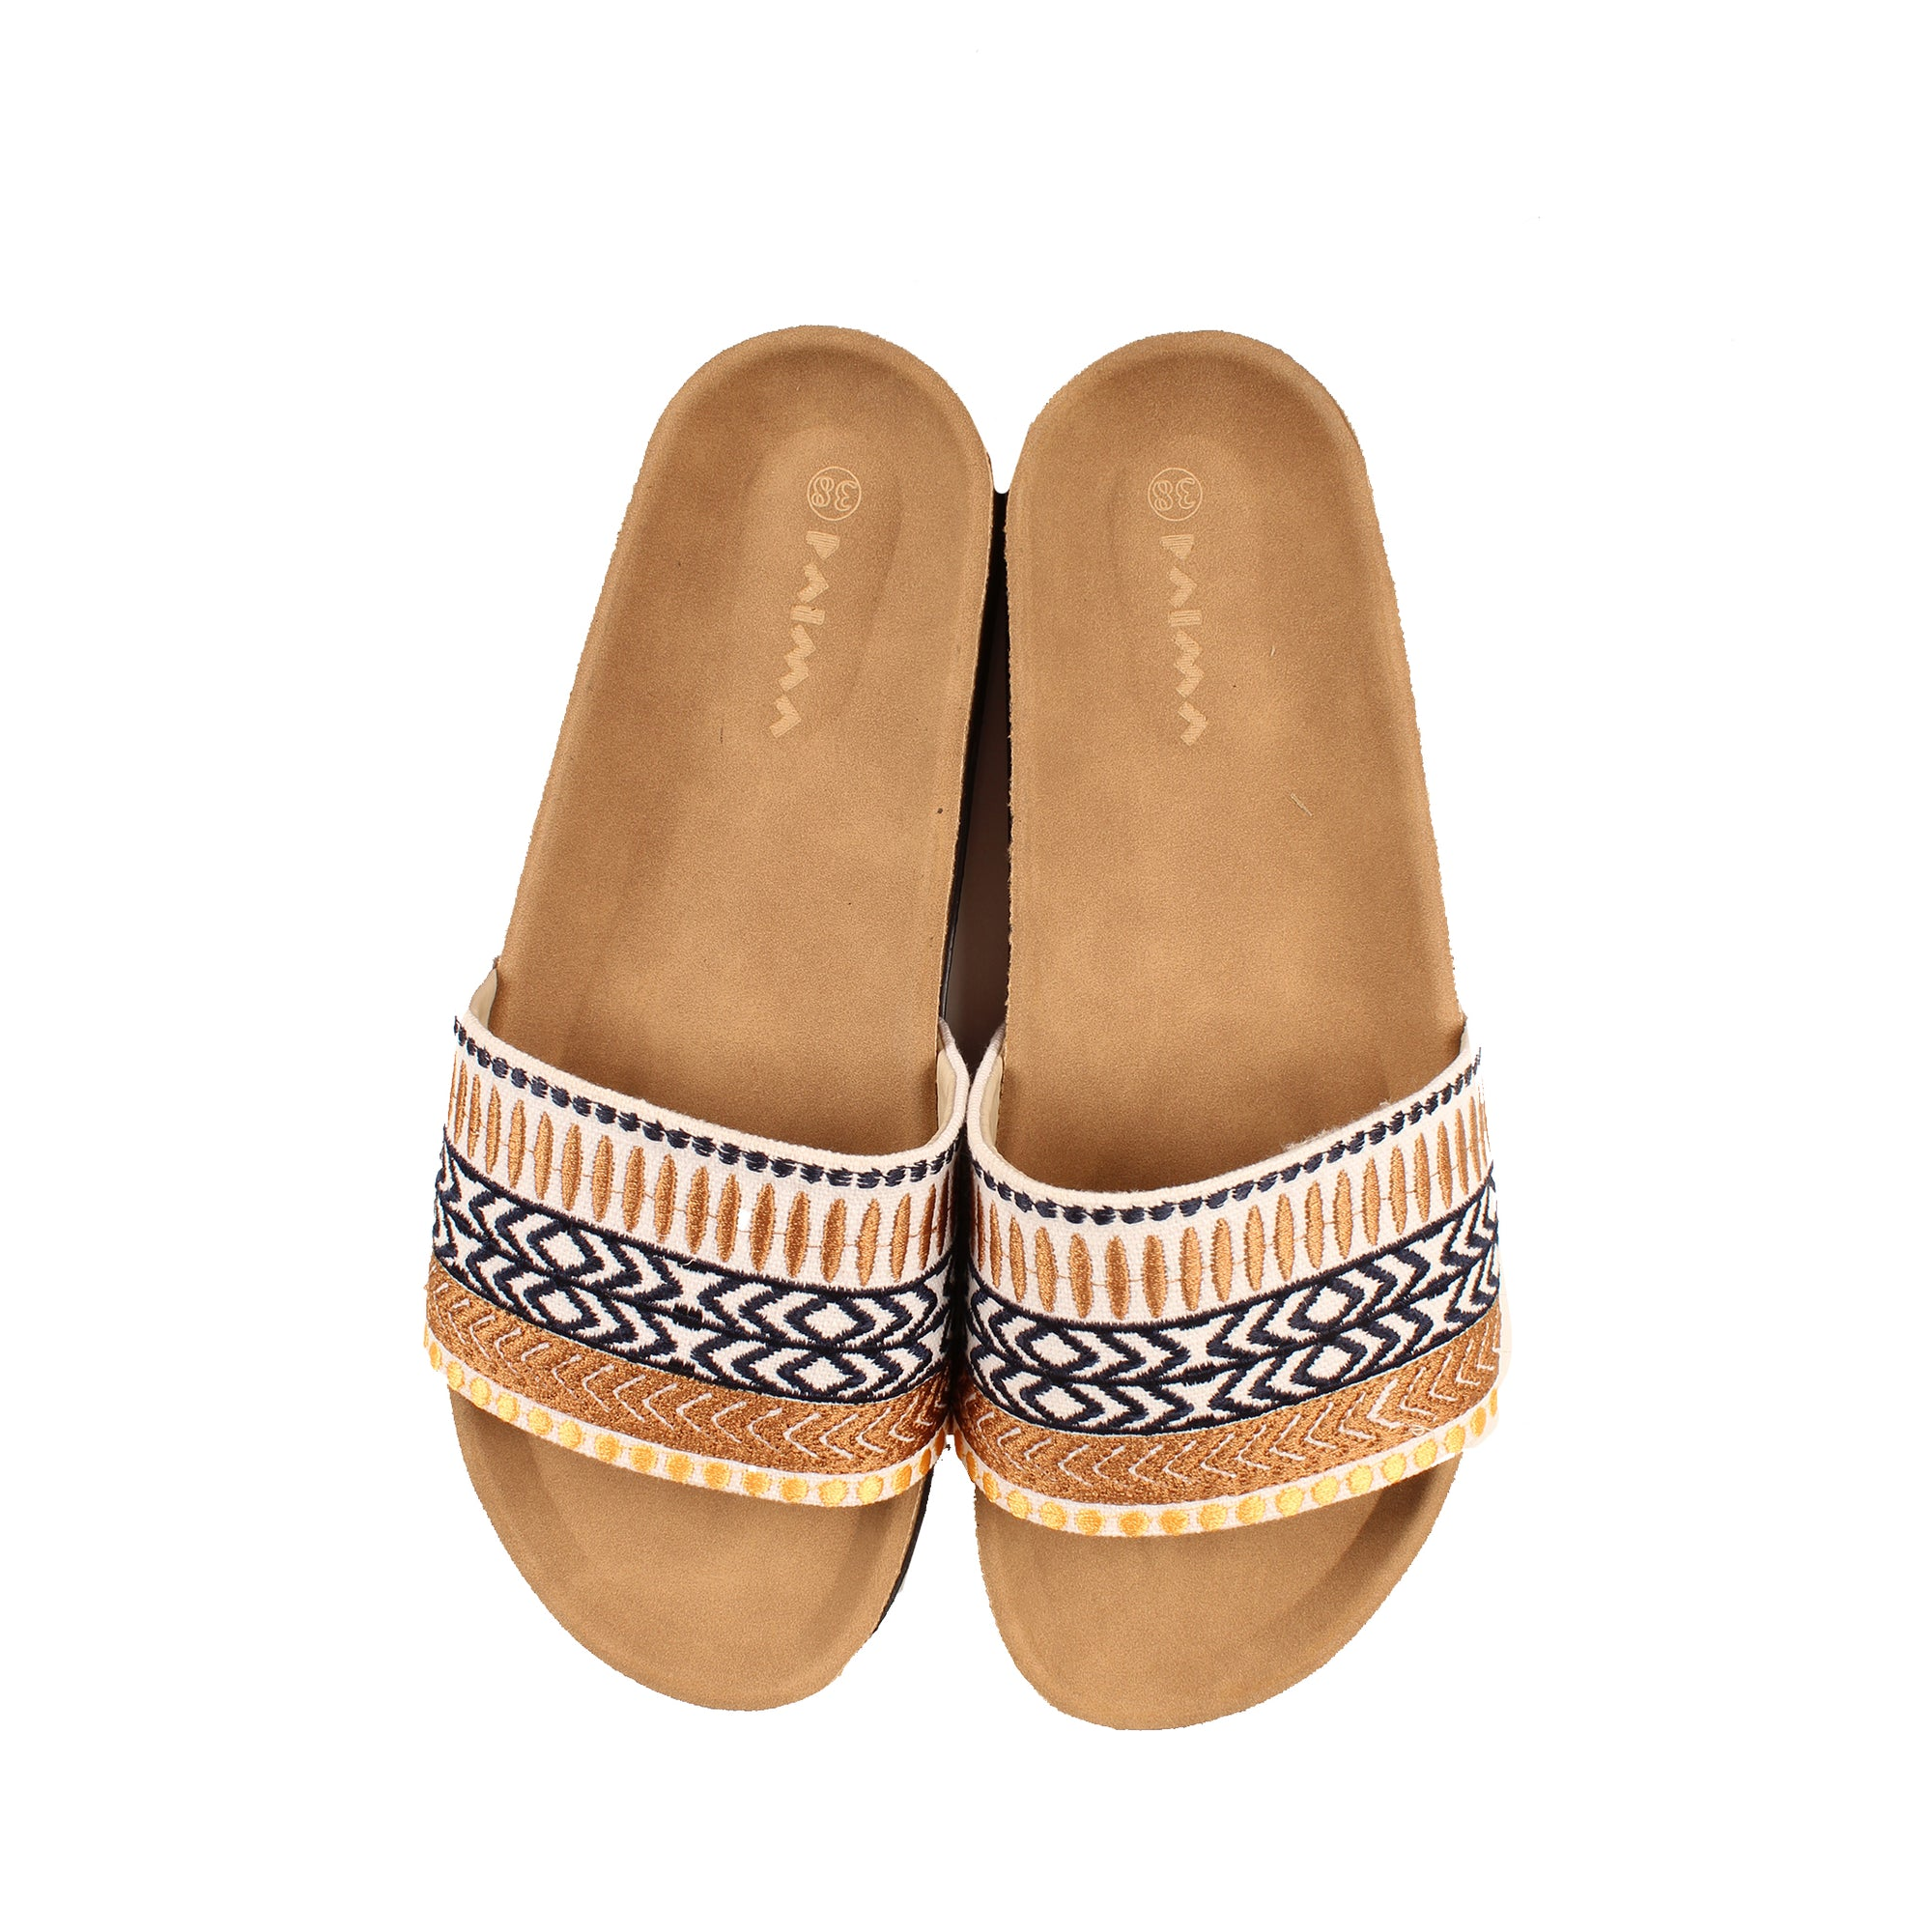 Geometric Boho Slides Brown x Navy